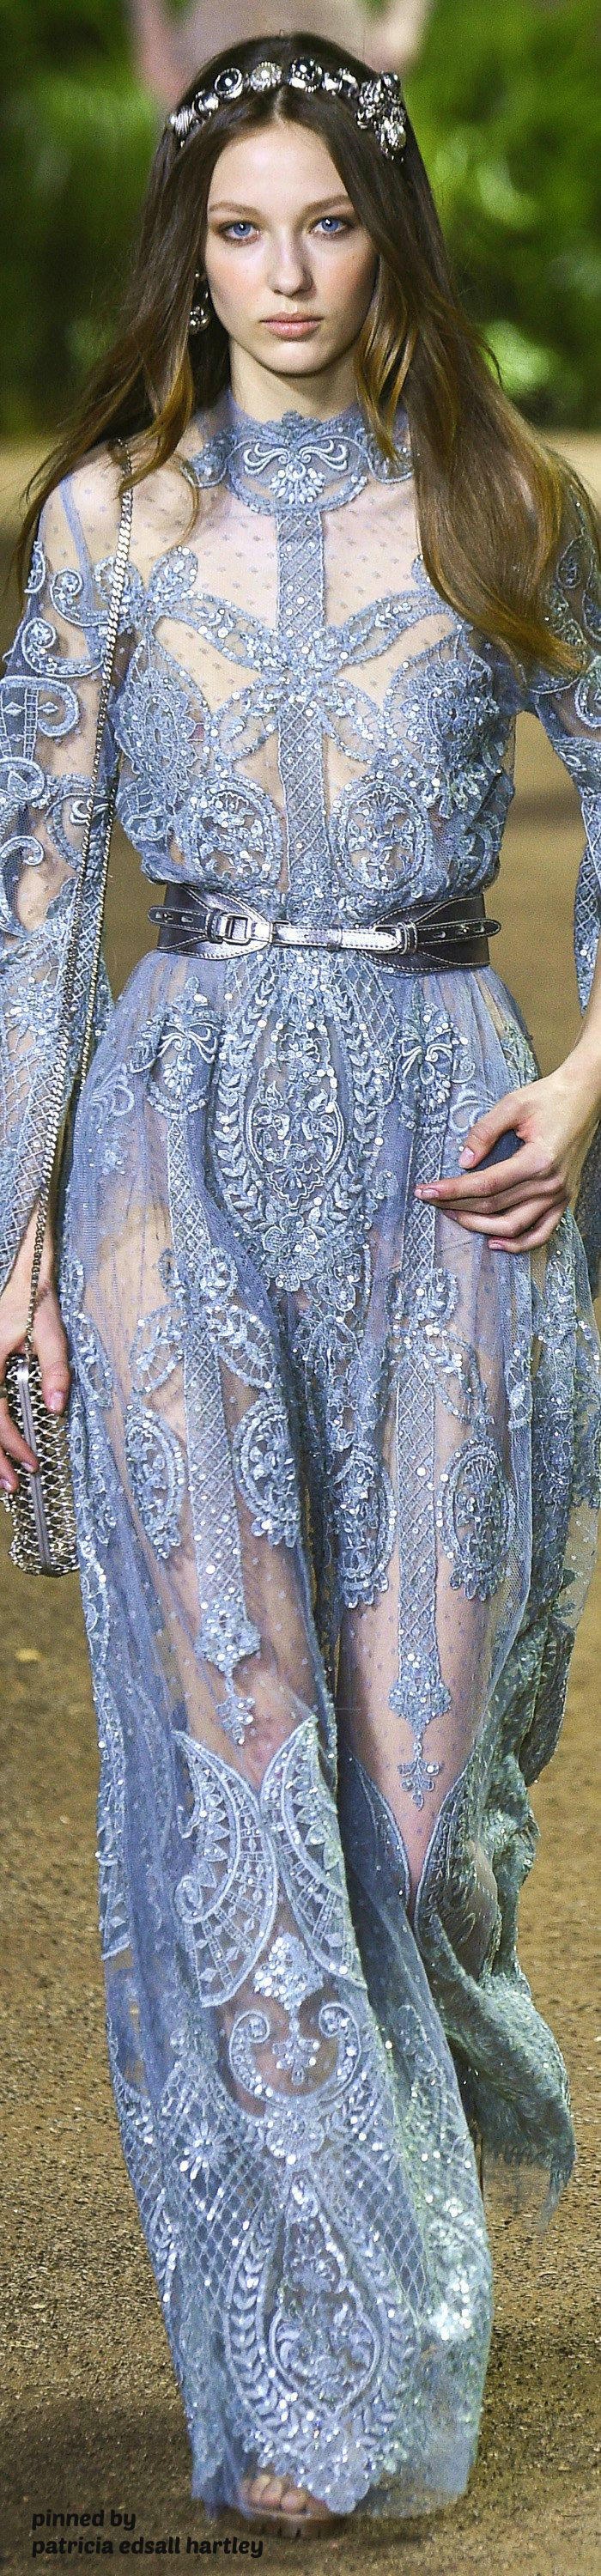 Elie Saab Spring 2016 Couture Fashion Show | Elie saab couture ...